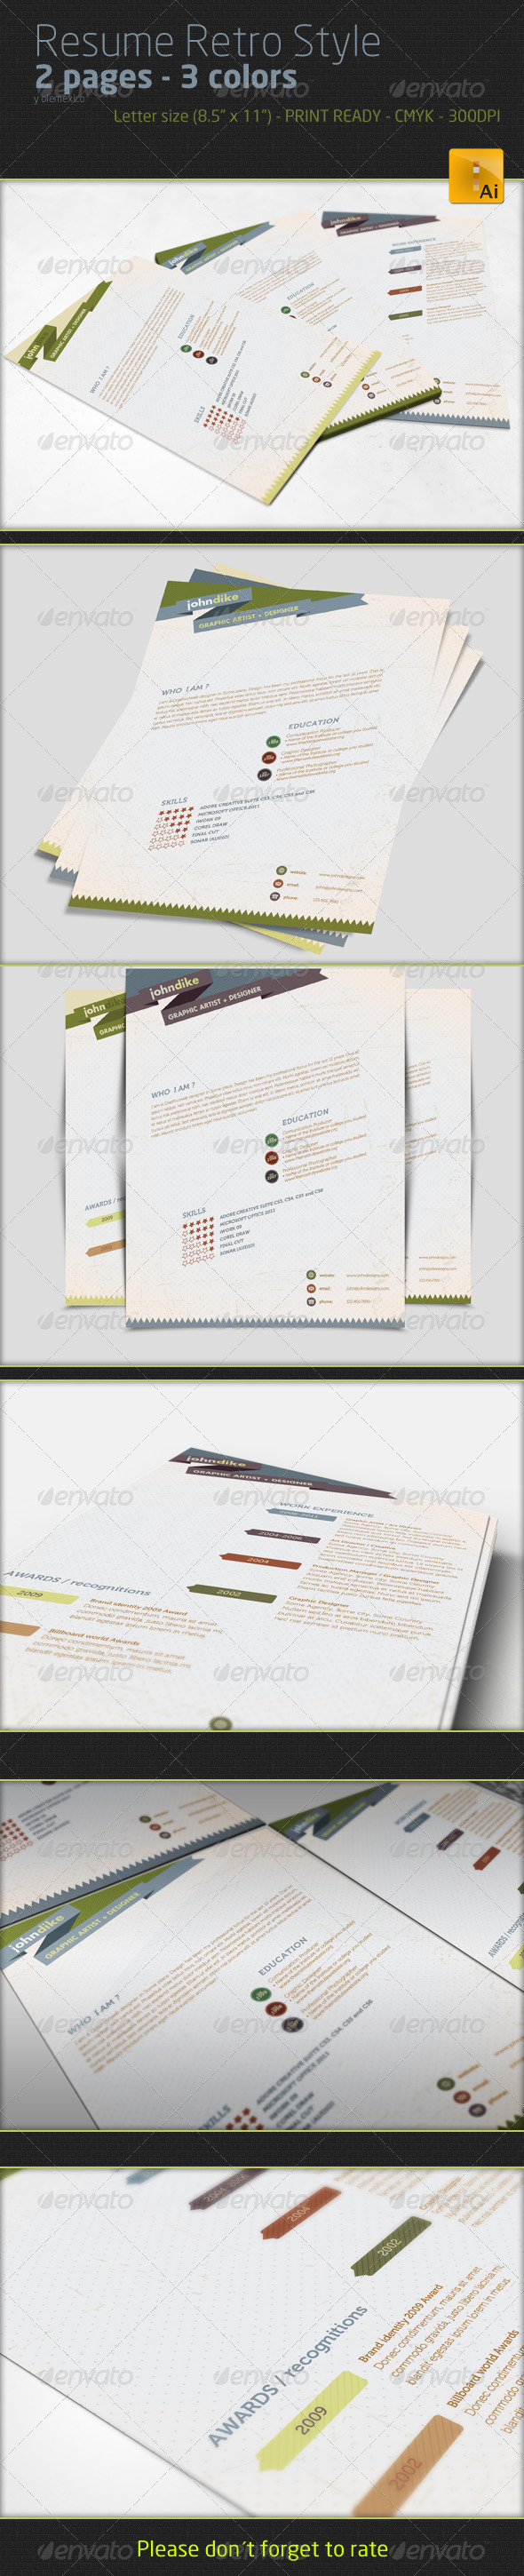 Professional Resume - Retro Style - Resumes Stationery